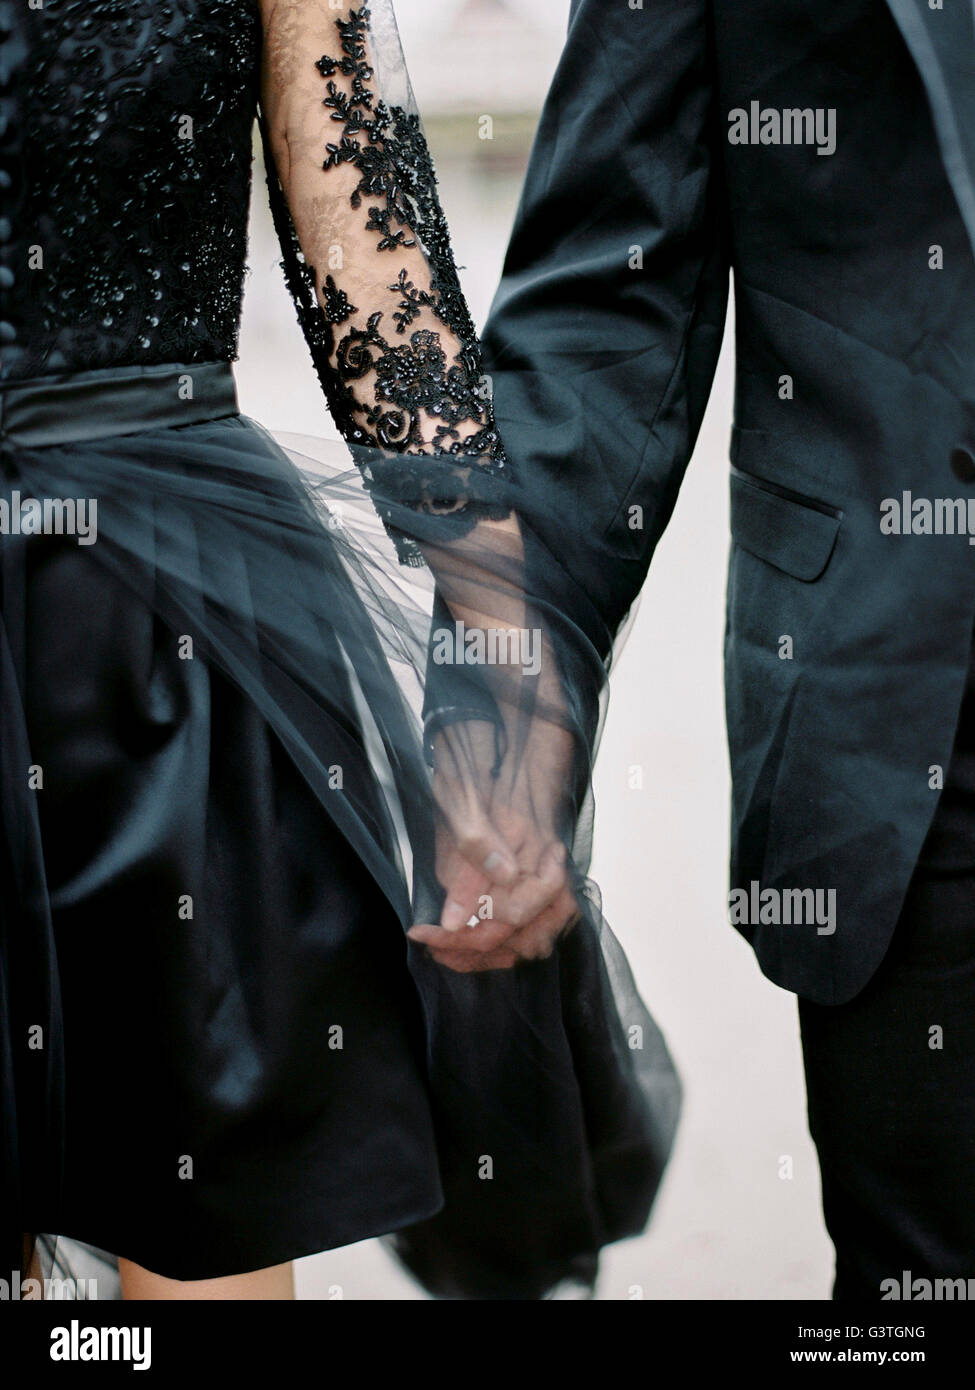 Sweden, Young formally dressed couple holding hands - Stock Image